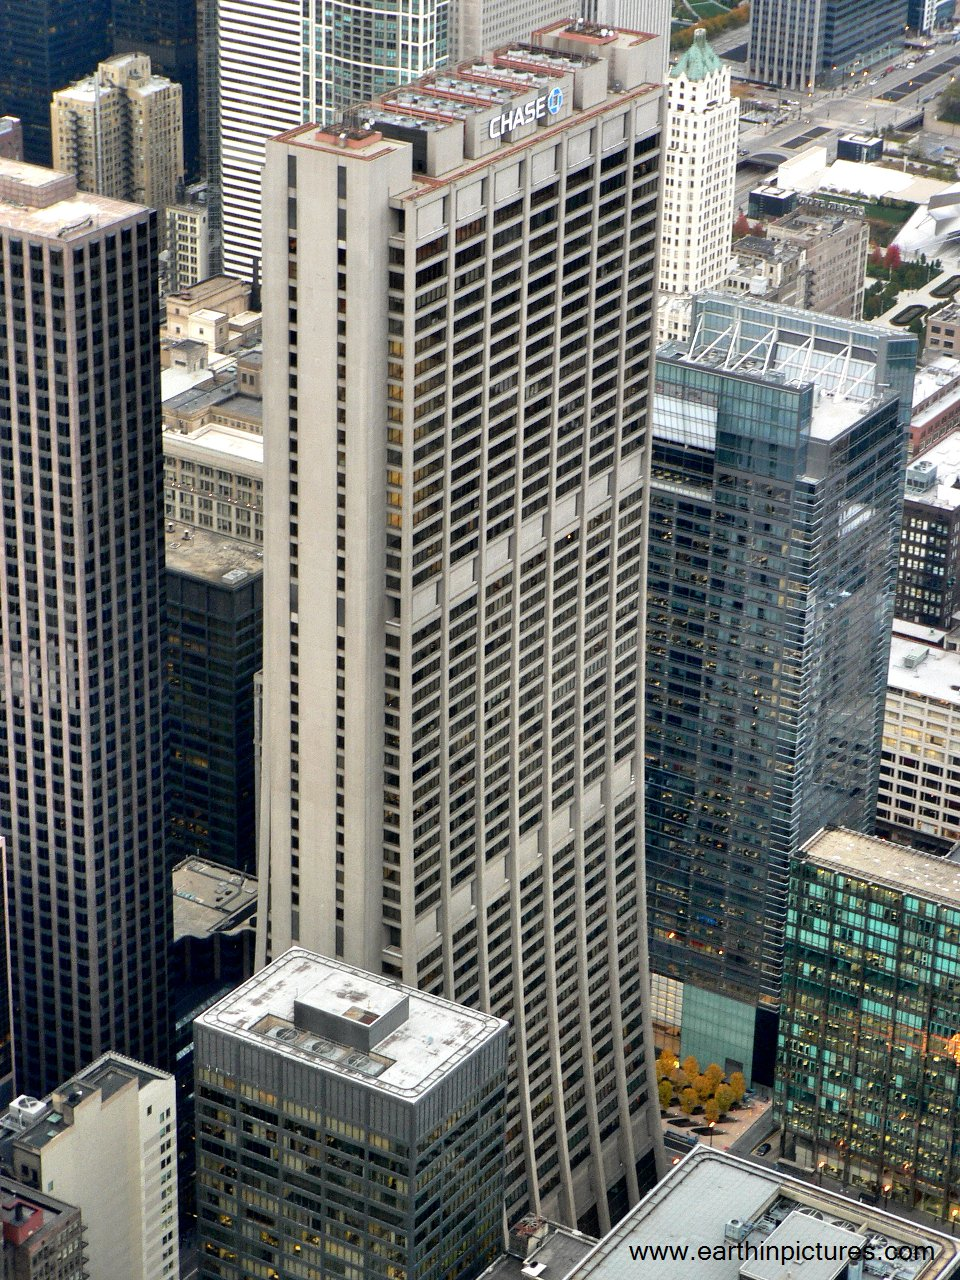 chase tower chicago megaconstrucciones extreme